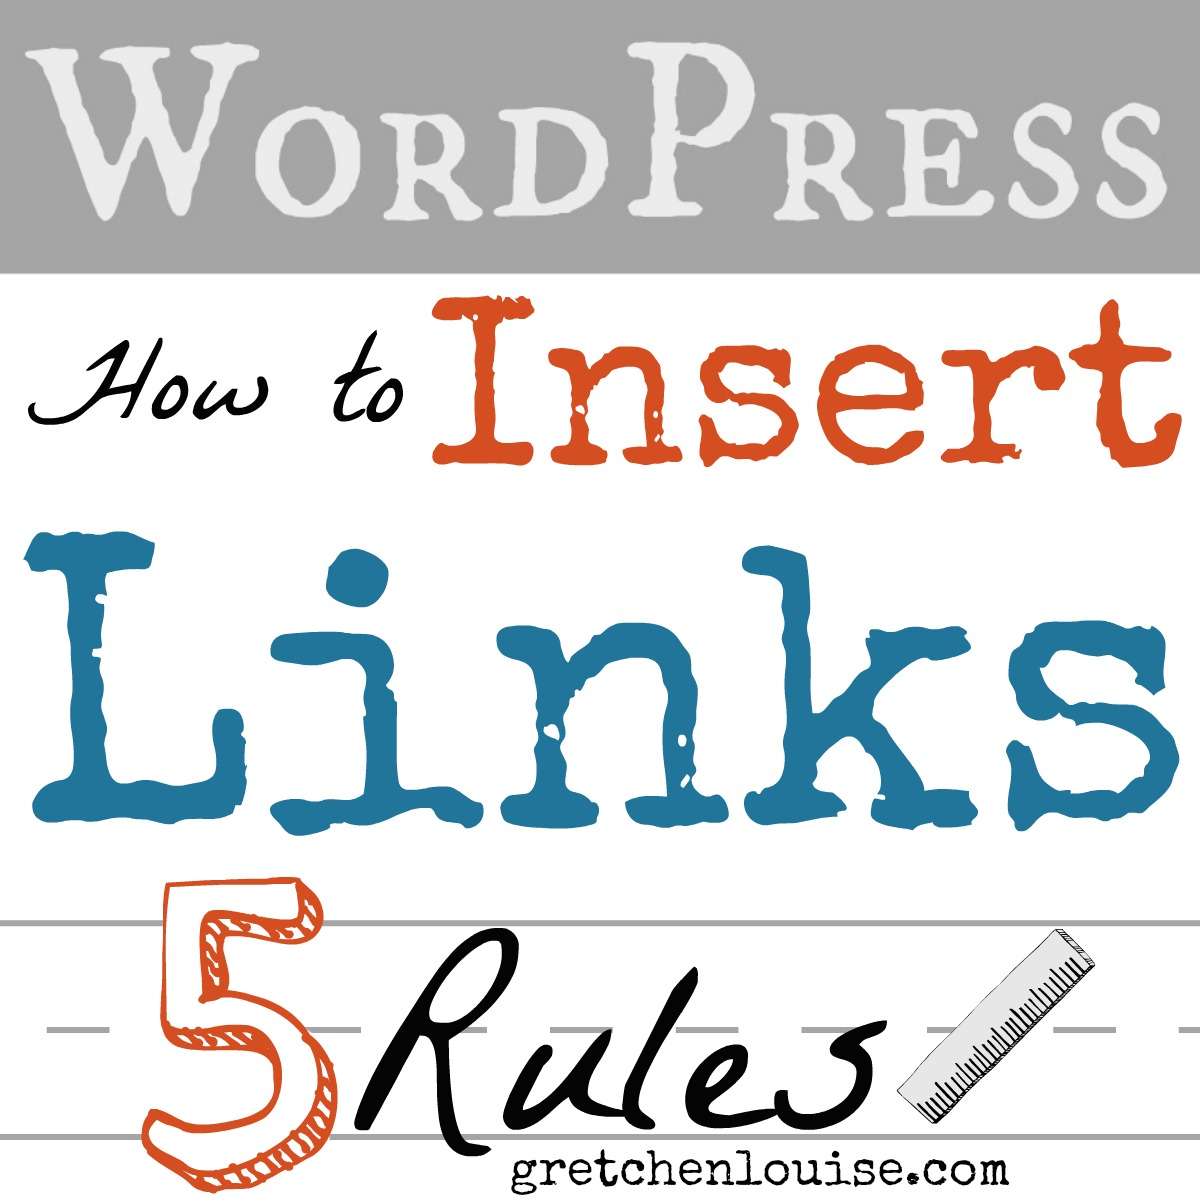 How to Insert Links in WordPress